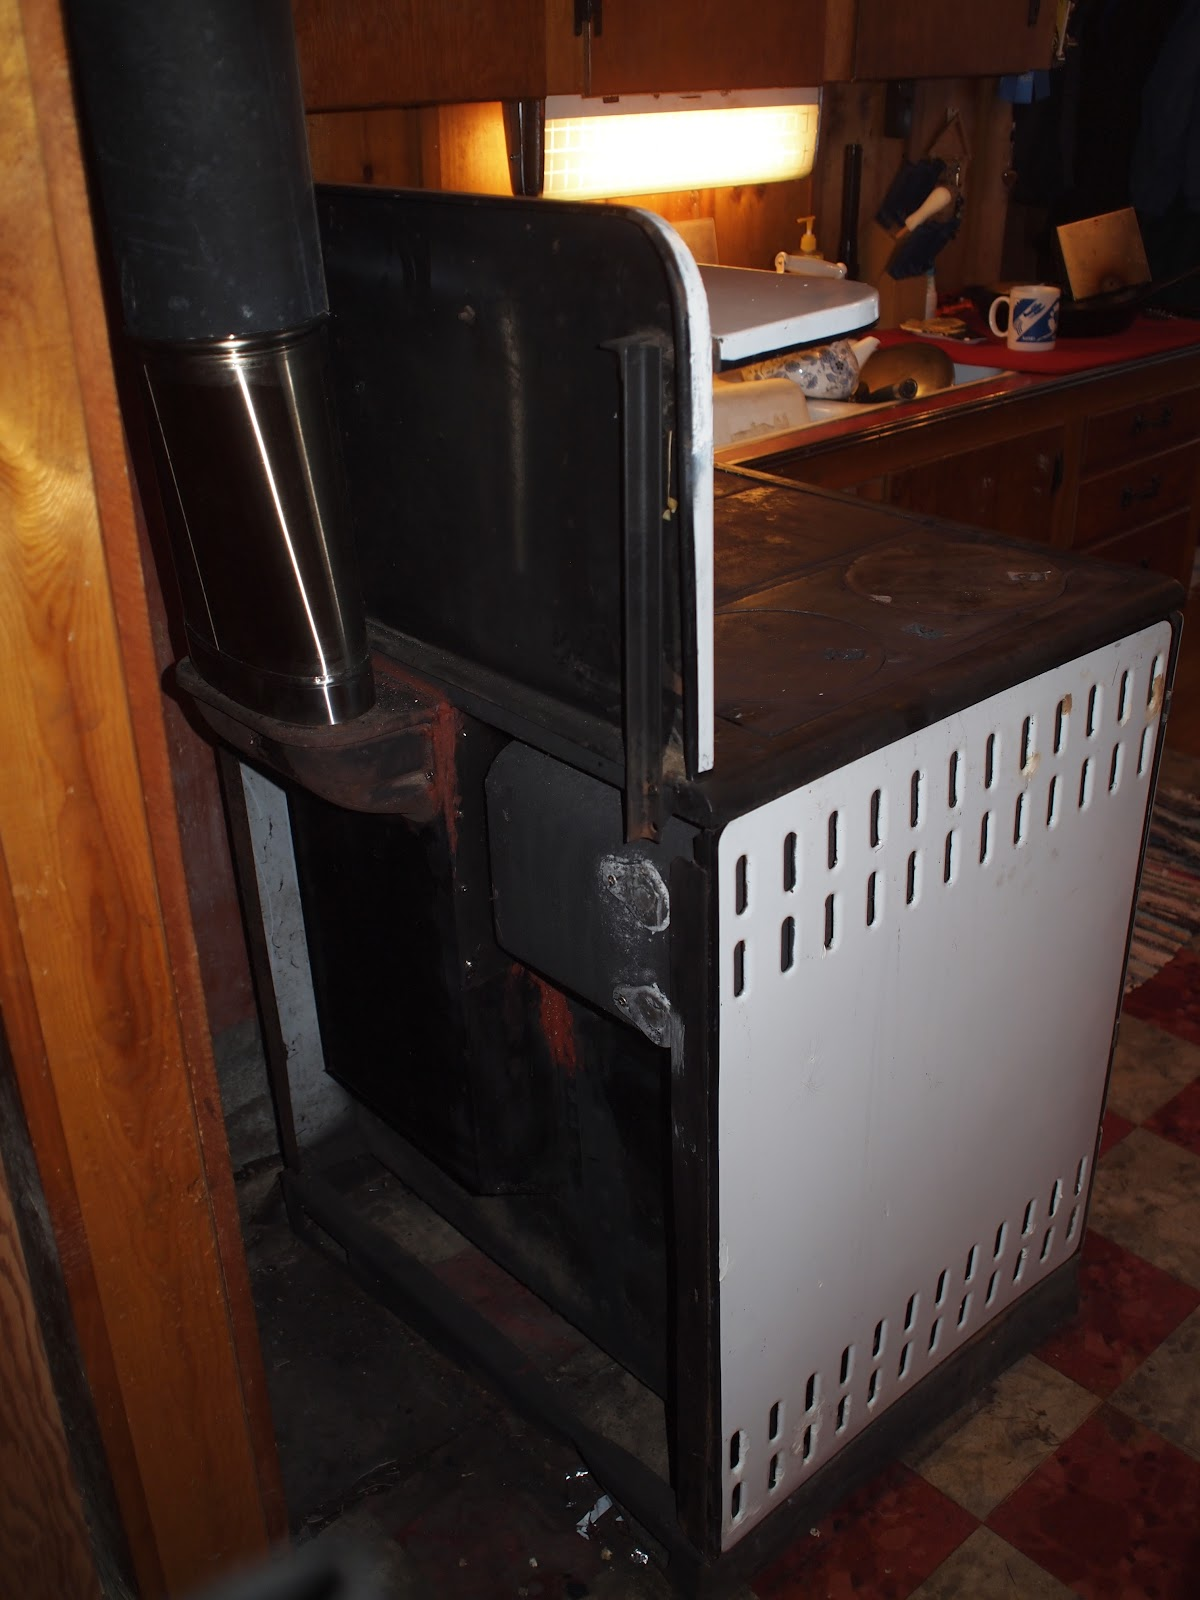 Wood fired cook stove, the Montag Princess | t i n y m o t o